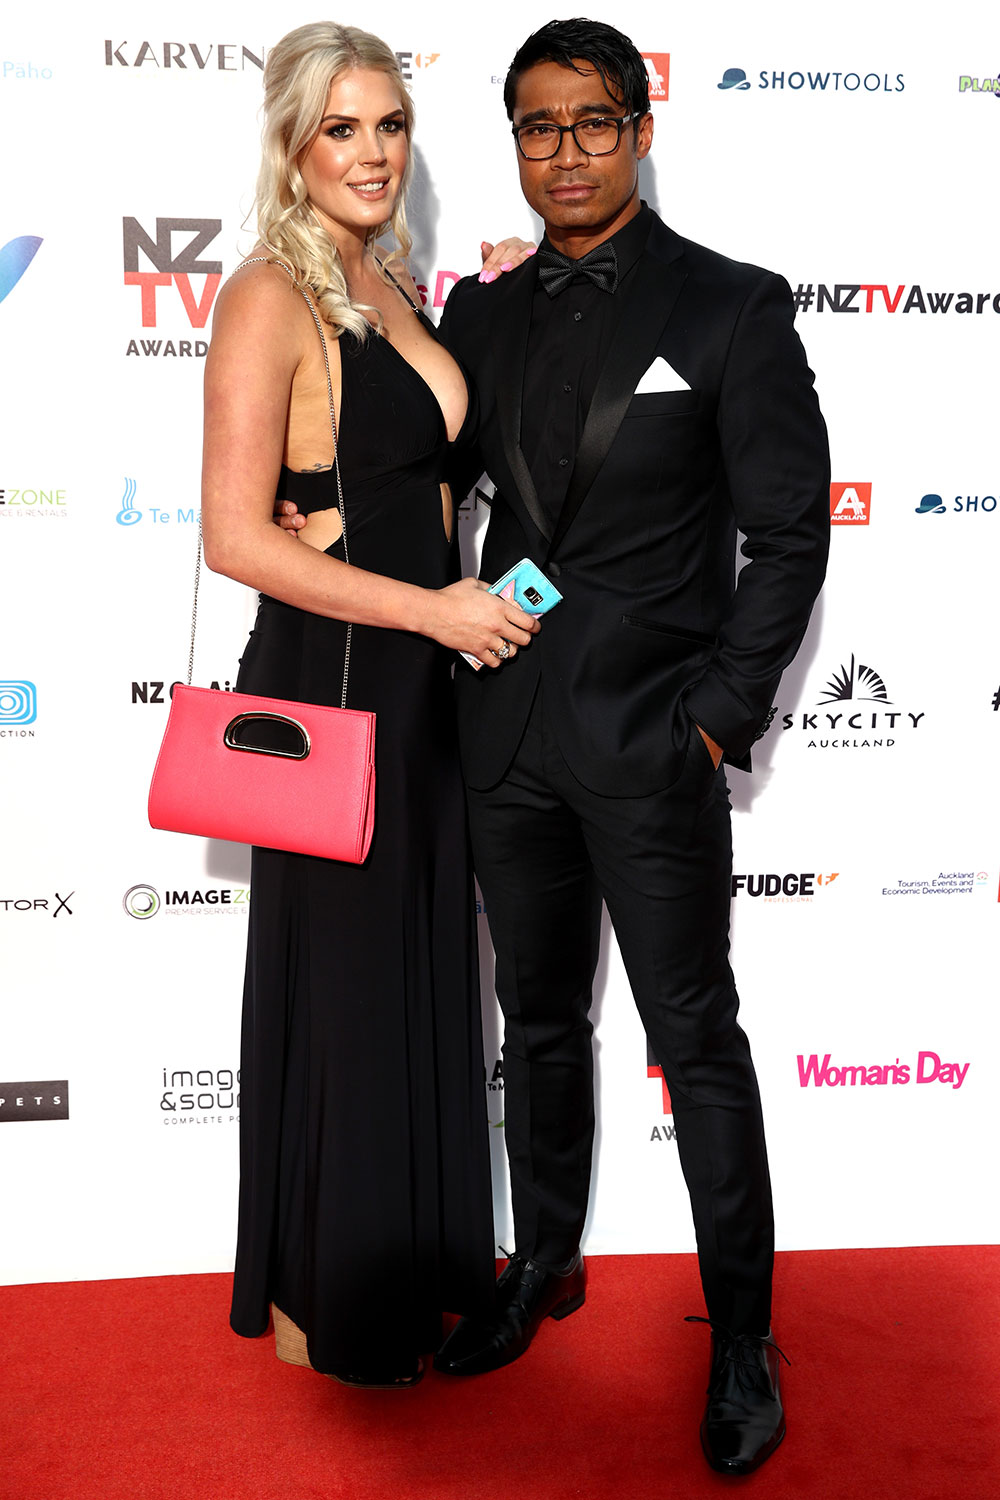 AUCKLAND, NEW ZEALAND - NOVEMBER 30: Pua Magasiva (R) and Lizz Sadler (L) arrive ahead of the NZ TV Awards at Sky City on November 30, 2017 in Auckland, New Zealand. (Photo by Phil Walter/Getty Images)